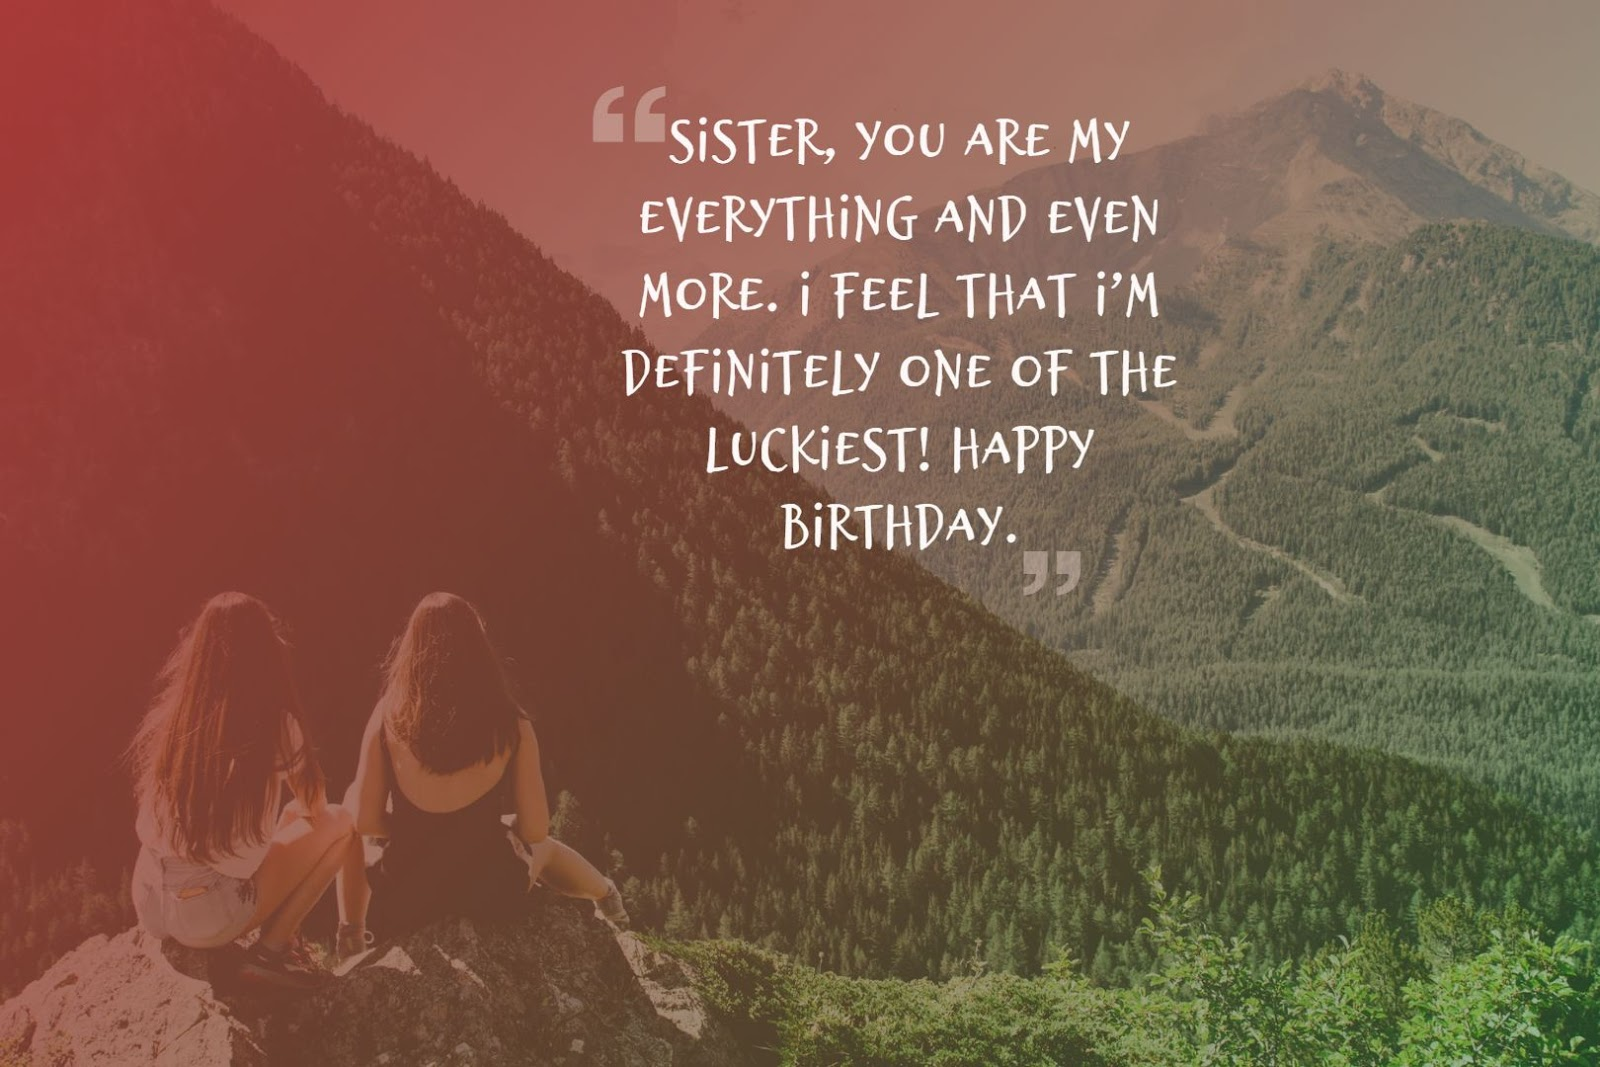 Outstanding 100 Birthday Messages Birthday Quotes And Birthday Wishes For Sister Funny Birthday Cards Online Inifofree Goldxyz